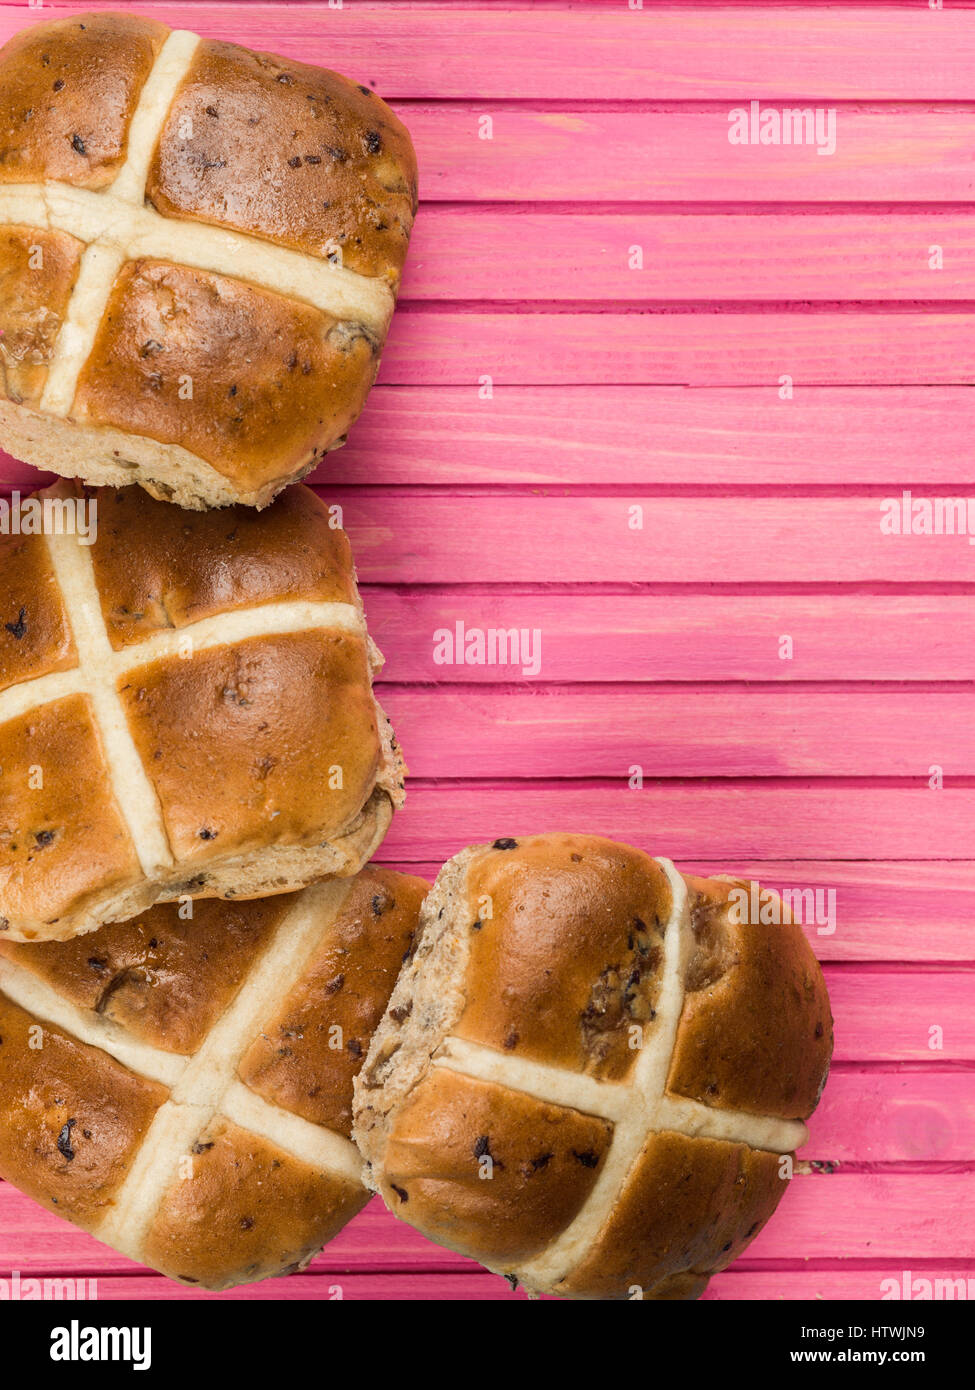 Four Hot Cross Buns Against a Pink Background - Stock Image